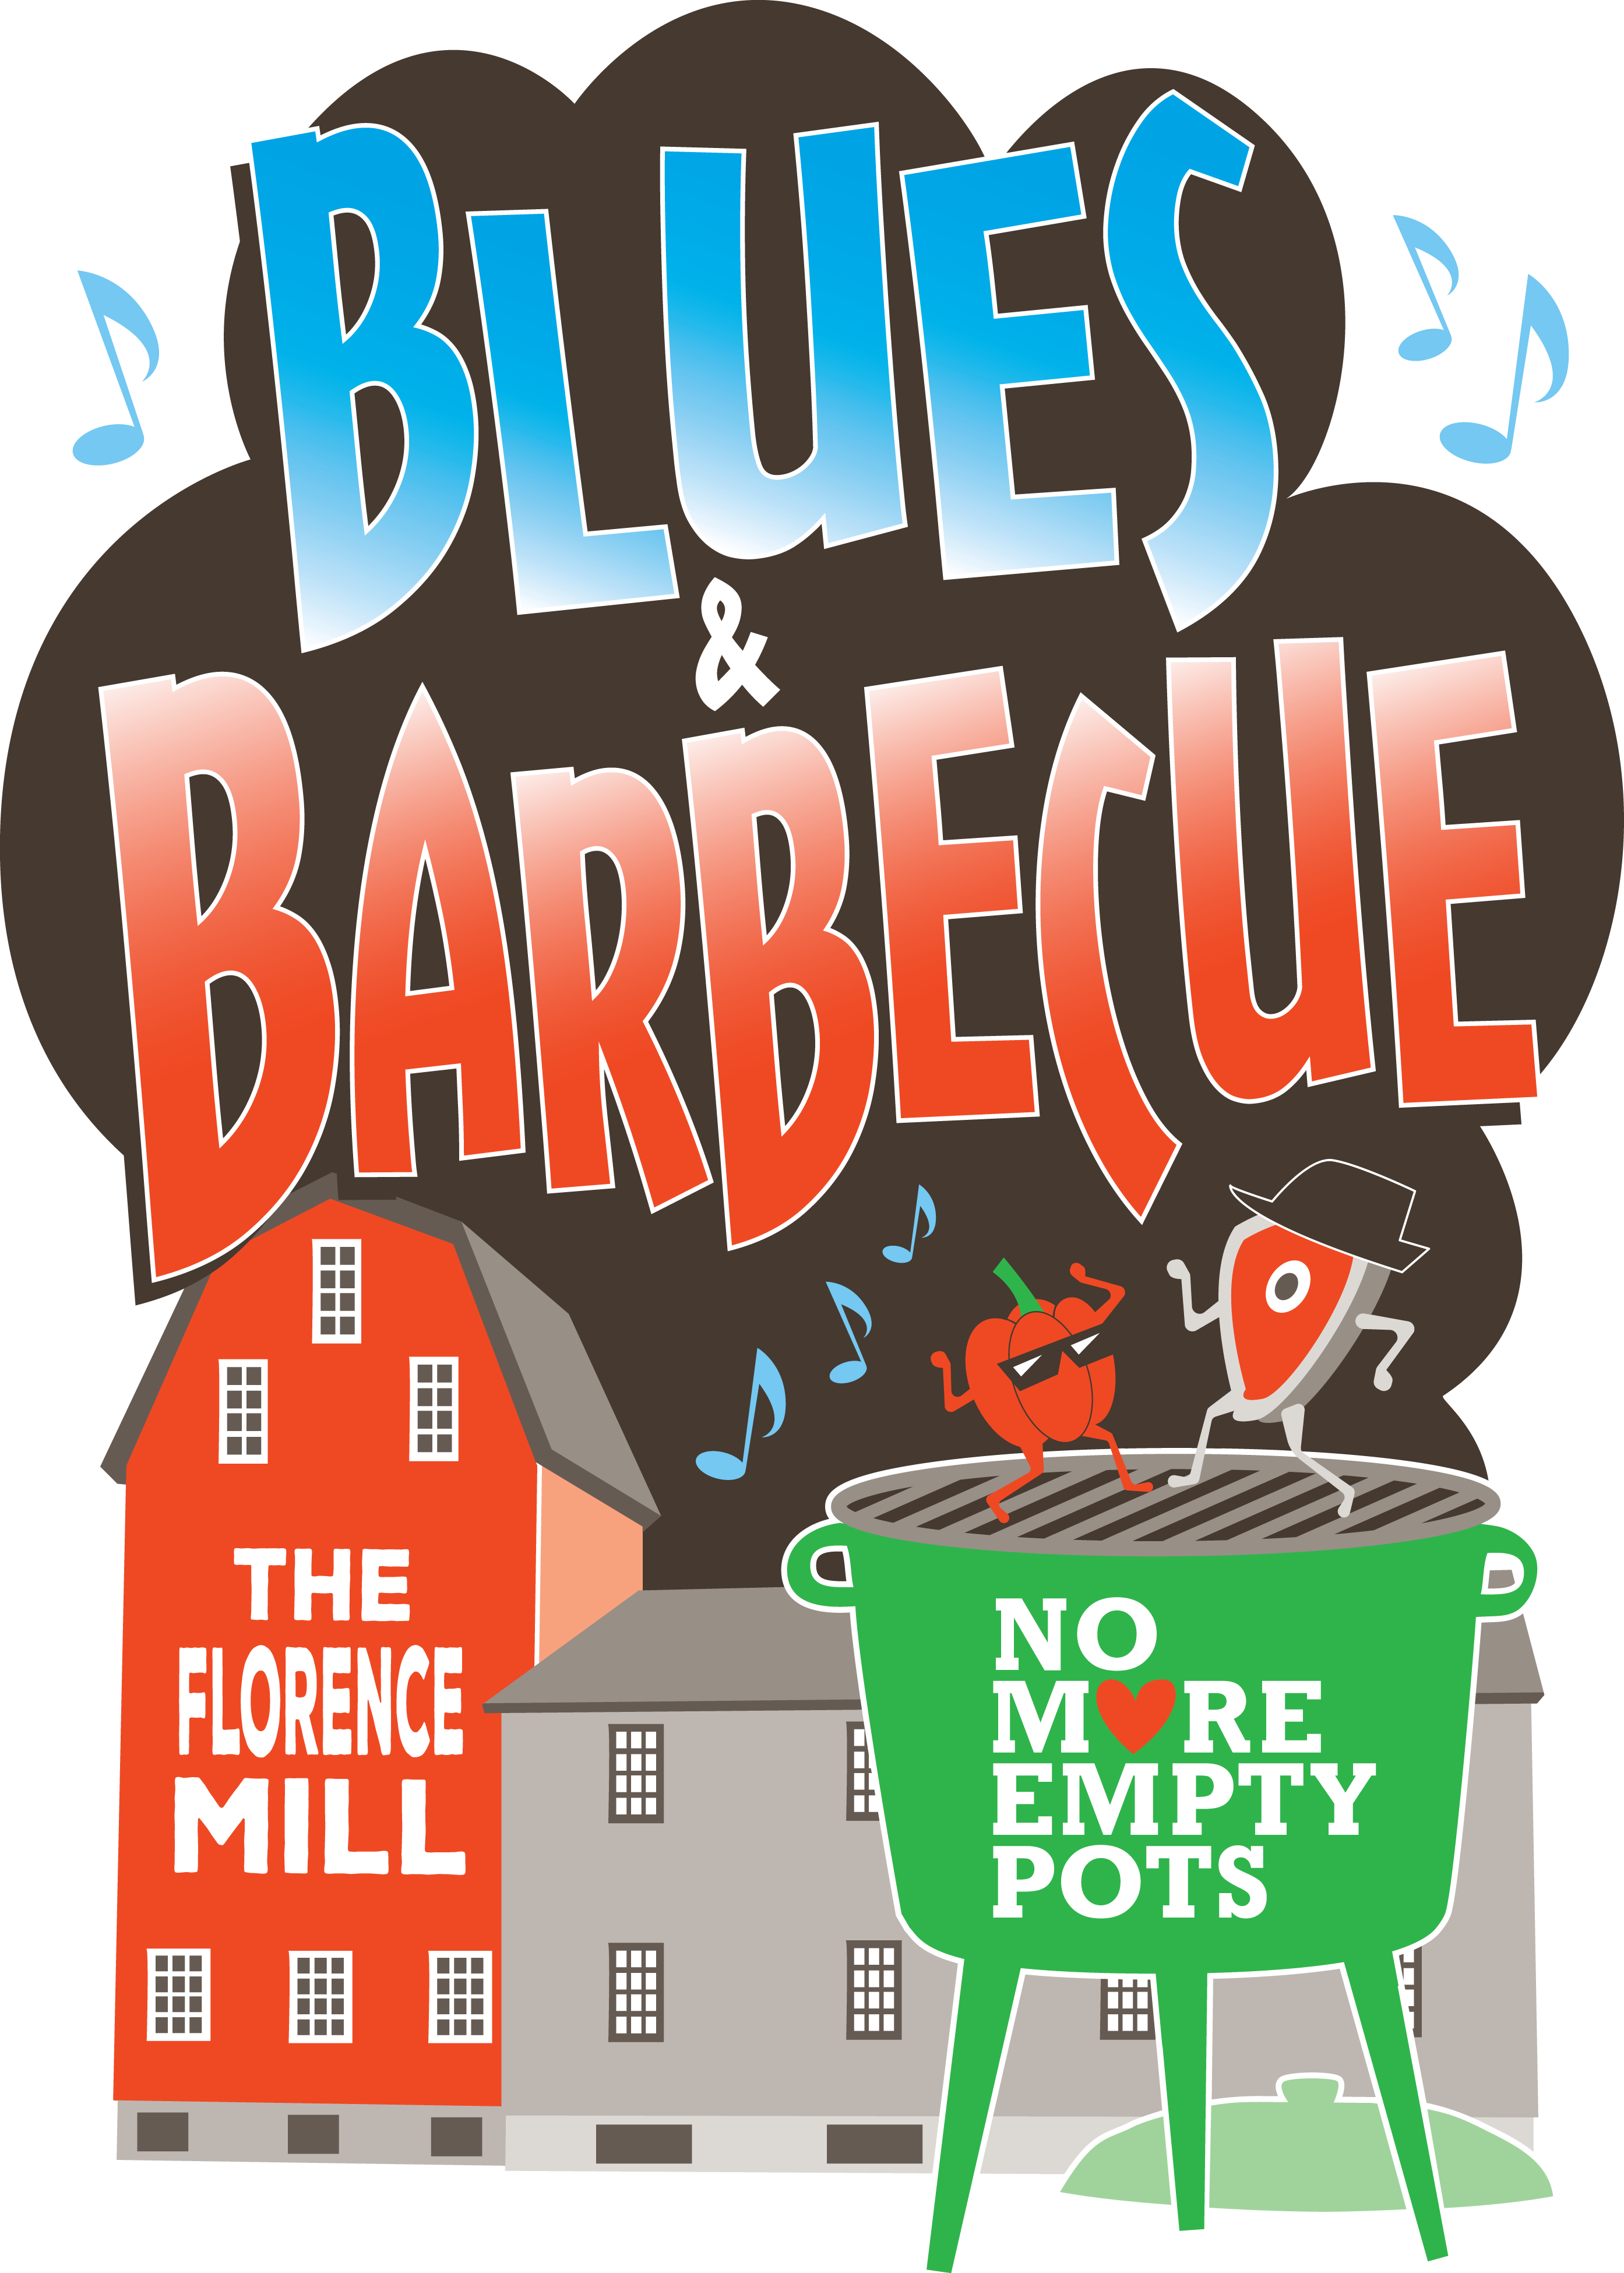 Schedule clipart annual leave.  nd blues bbq